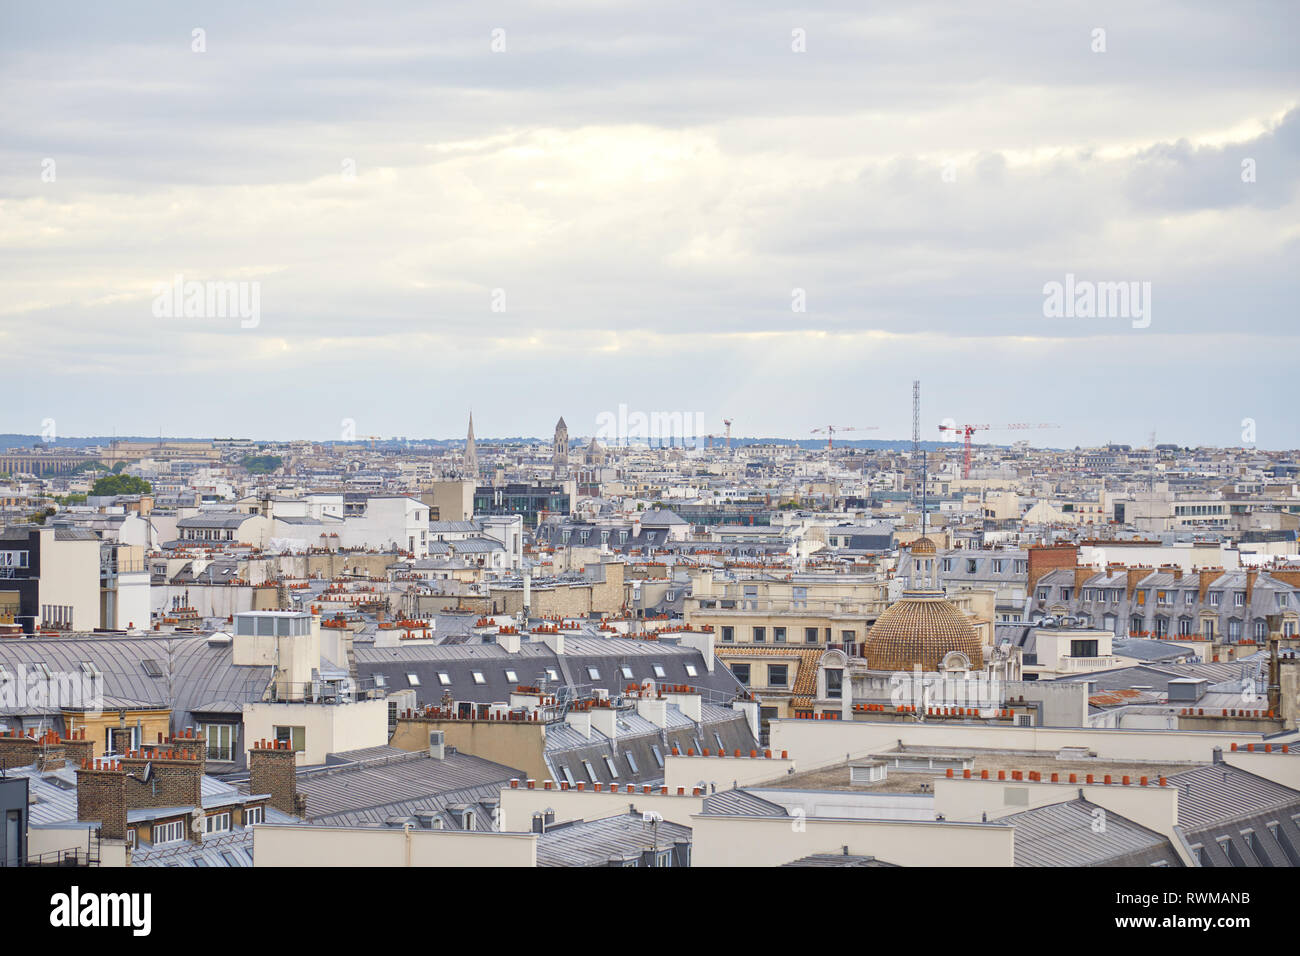 Paris rooftops view and skyline in a cloudy day in France Stock Photo